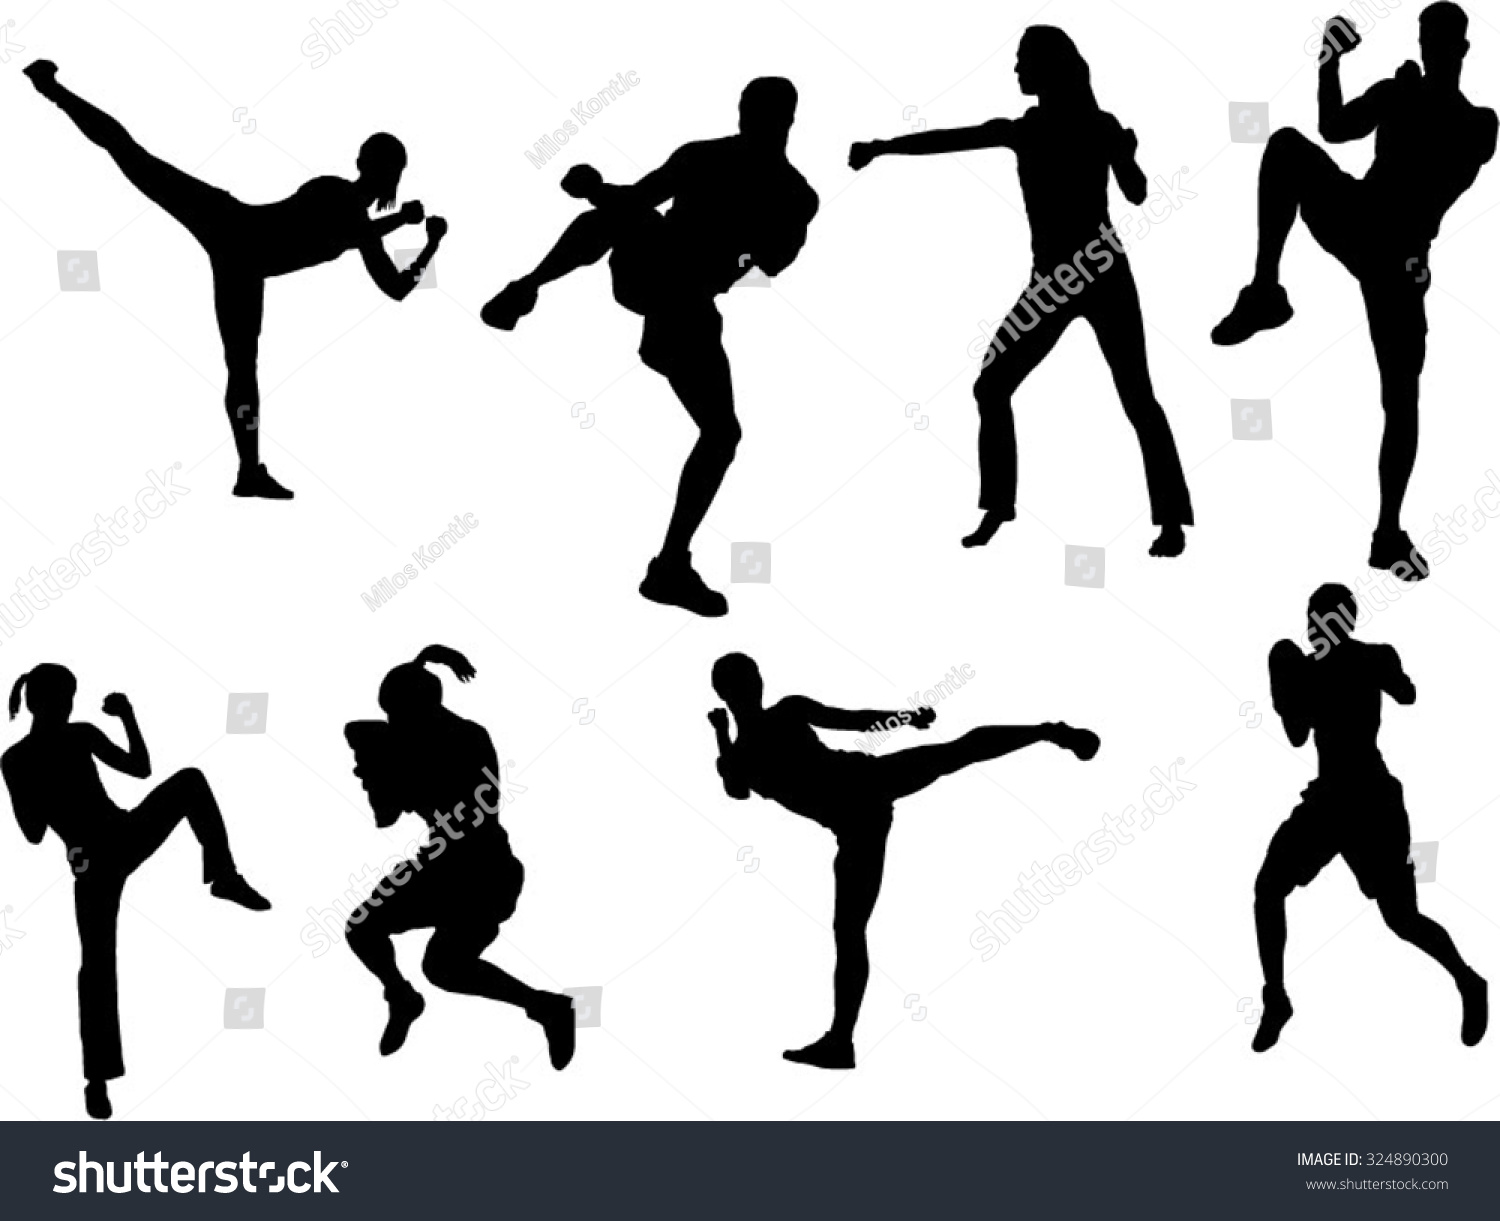 Set 8 tae bo silhouette stock vector (royalty free) 324890300.